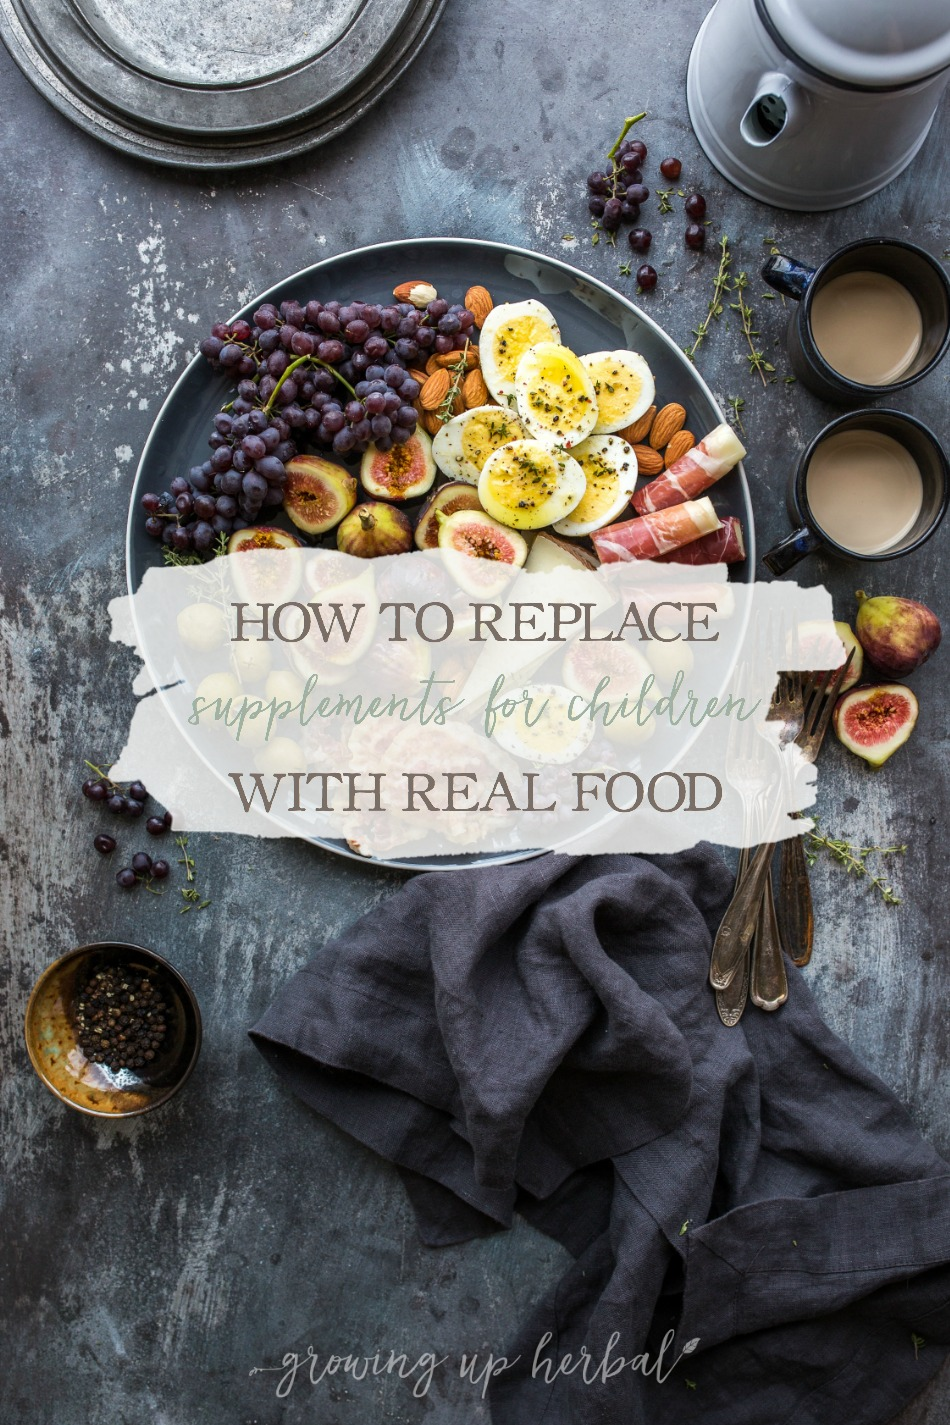 Nutrition For Kids: How To Replace Supplements For Children With Real Foods   Growing Up Herbal   Here's how to replace children's supplements with these healthy real foods!